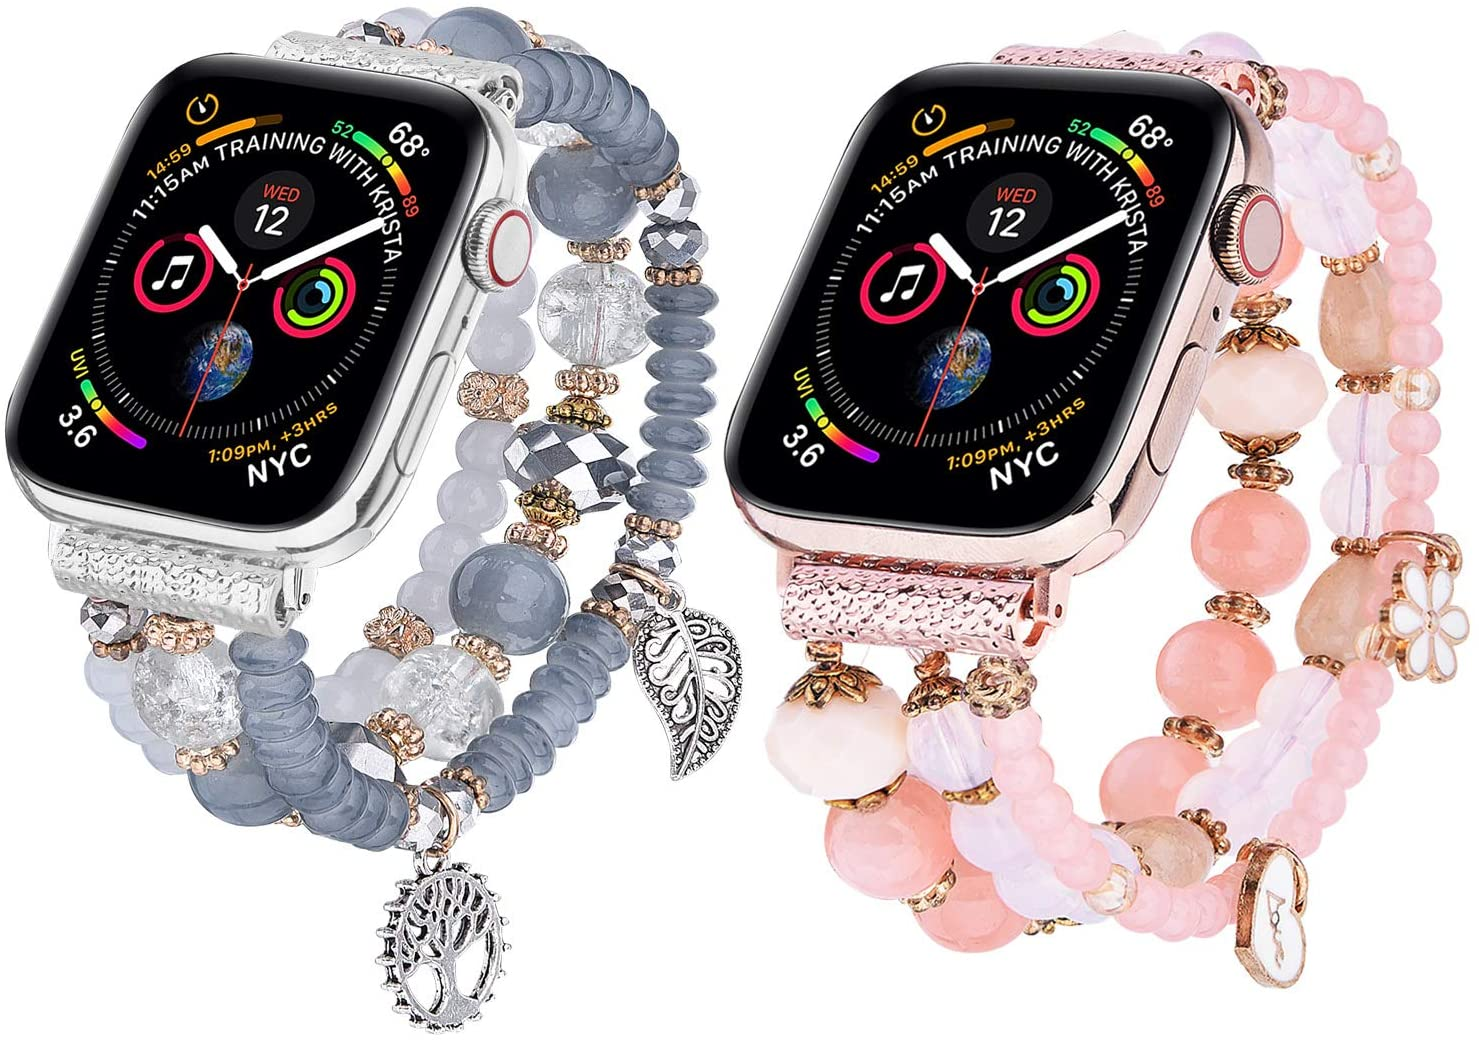 V-MORO Bracelet Compatible with Series 5 Apple Watch Bands 44mm/42mm Women Fashion Handmade Elastic Stretch Beads Strap Replacement for iWatch Series 4/3/2/1 42mm/44mm Girls Blue Pink